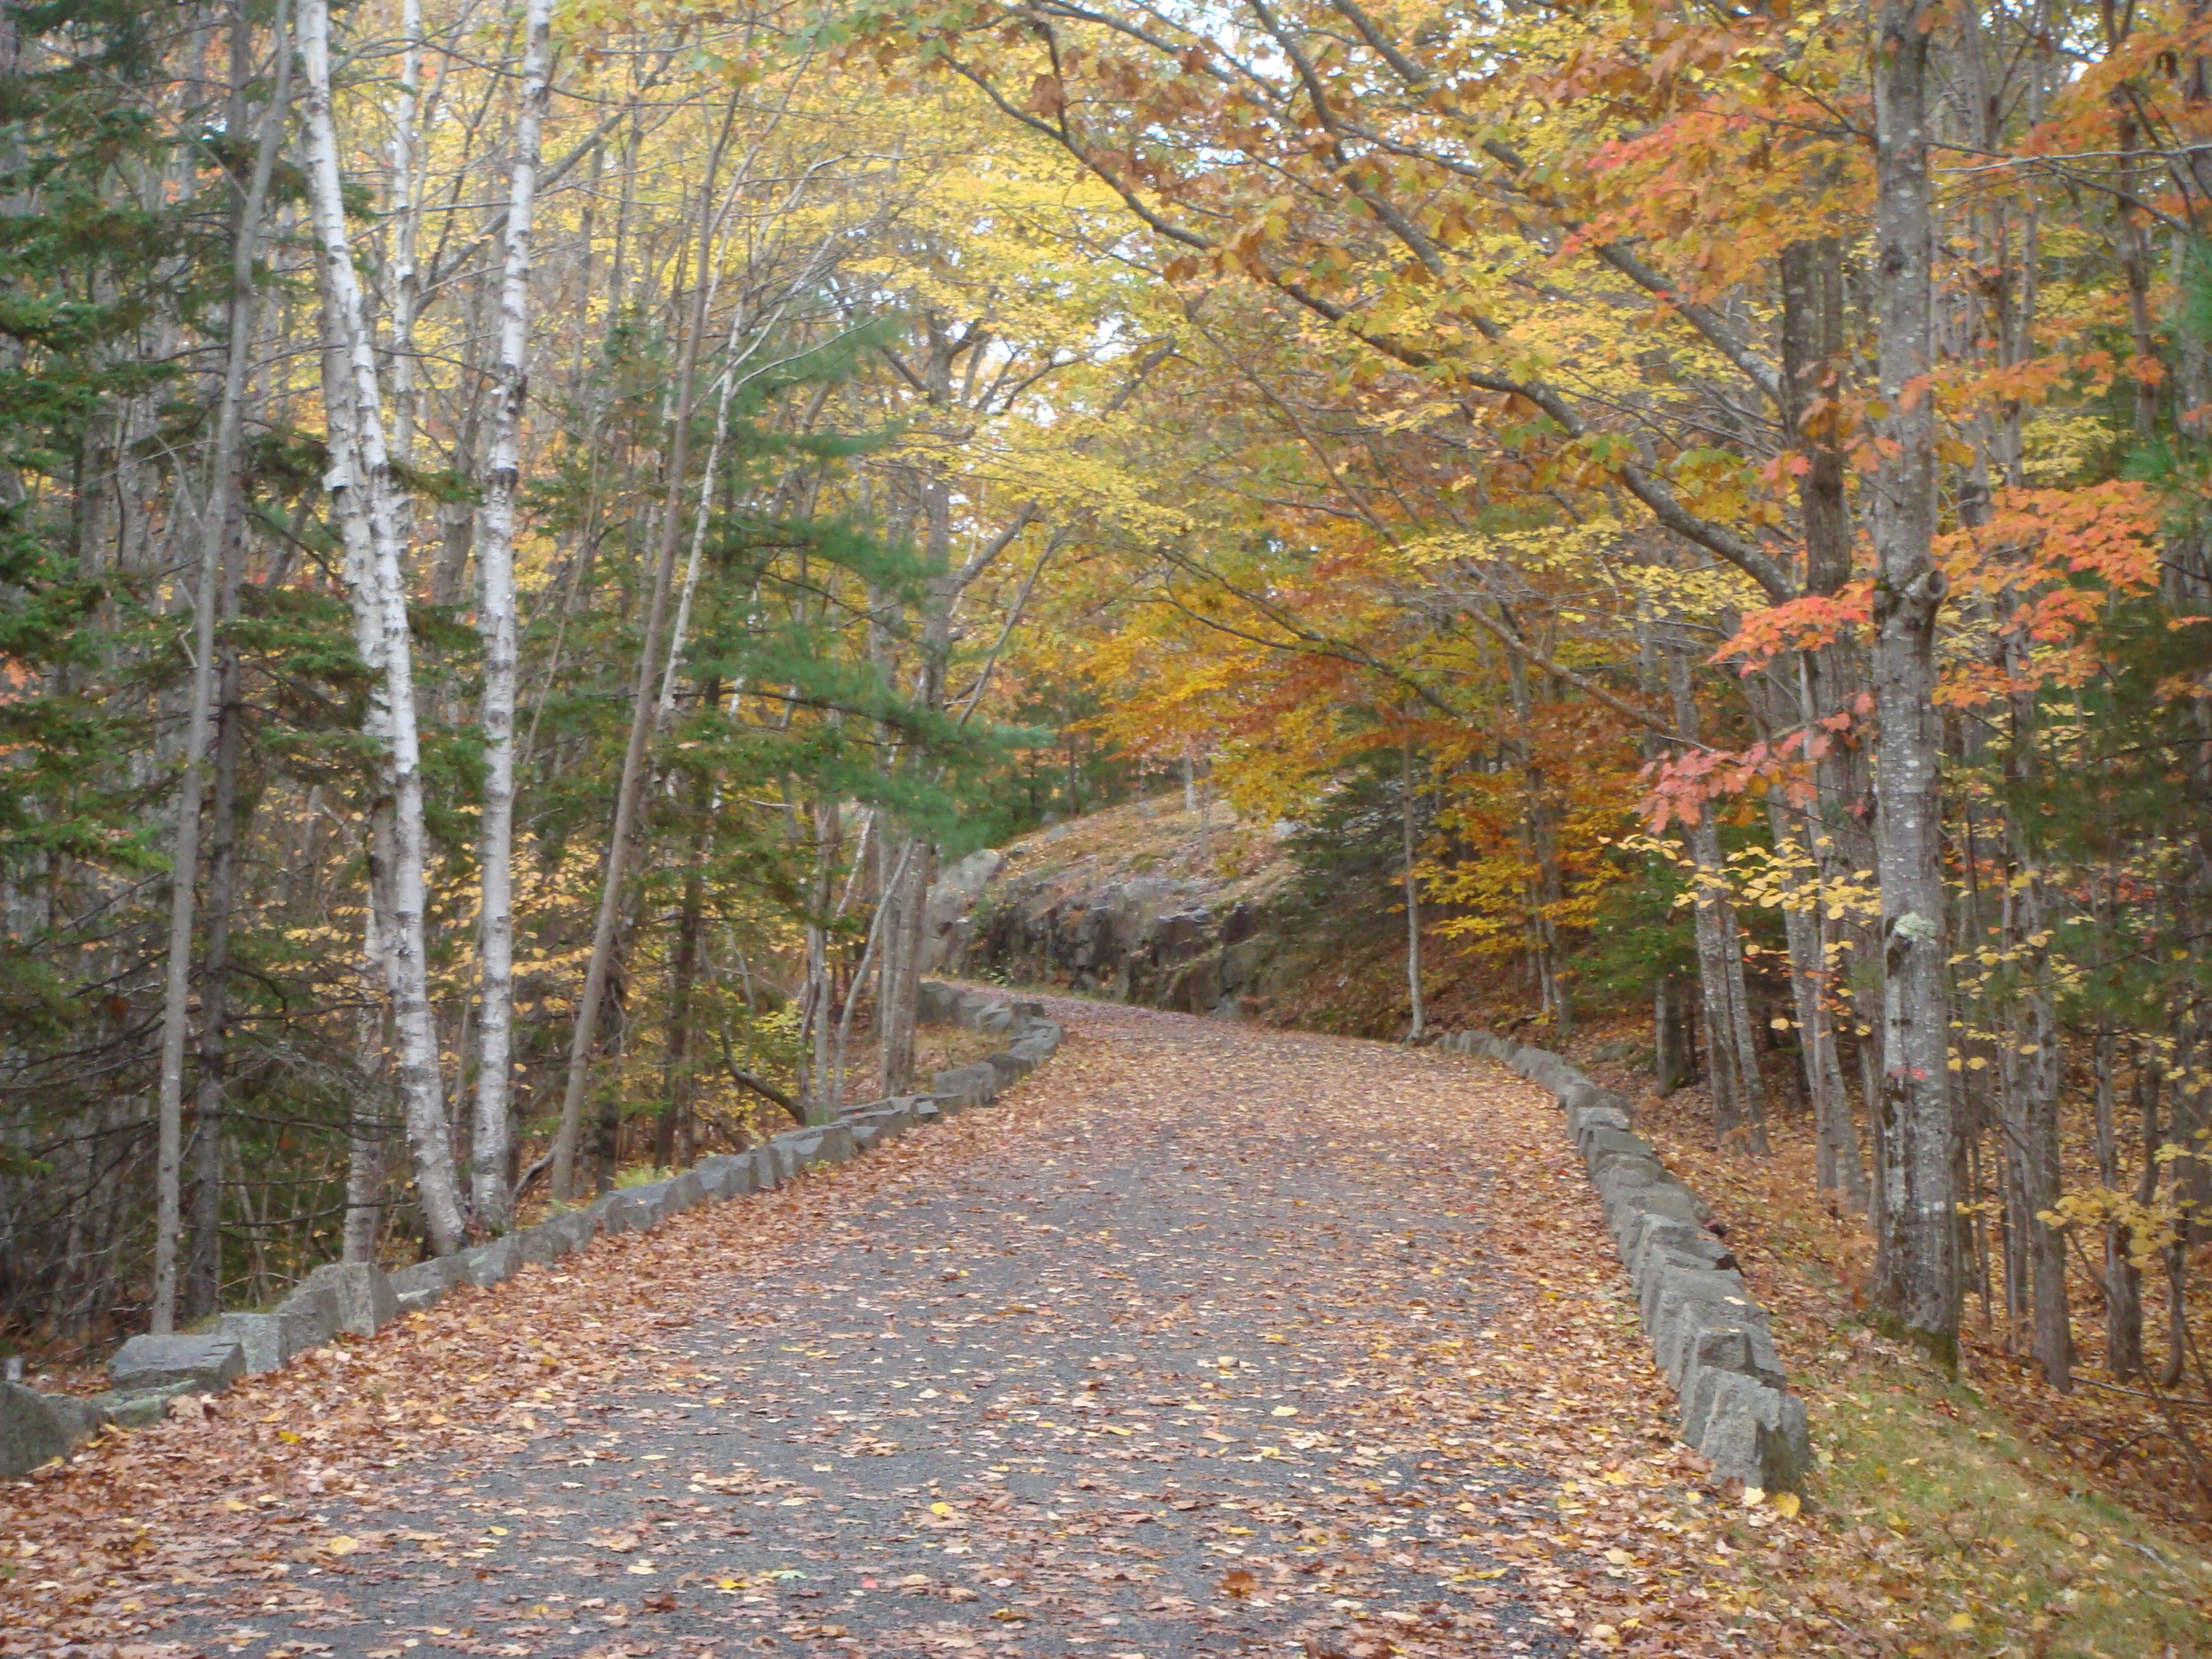 The carriage roads are wide and gently graded as they were originally developed to accommodate horse-drawn carriages.